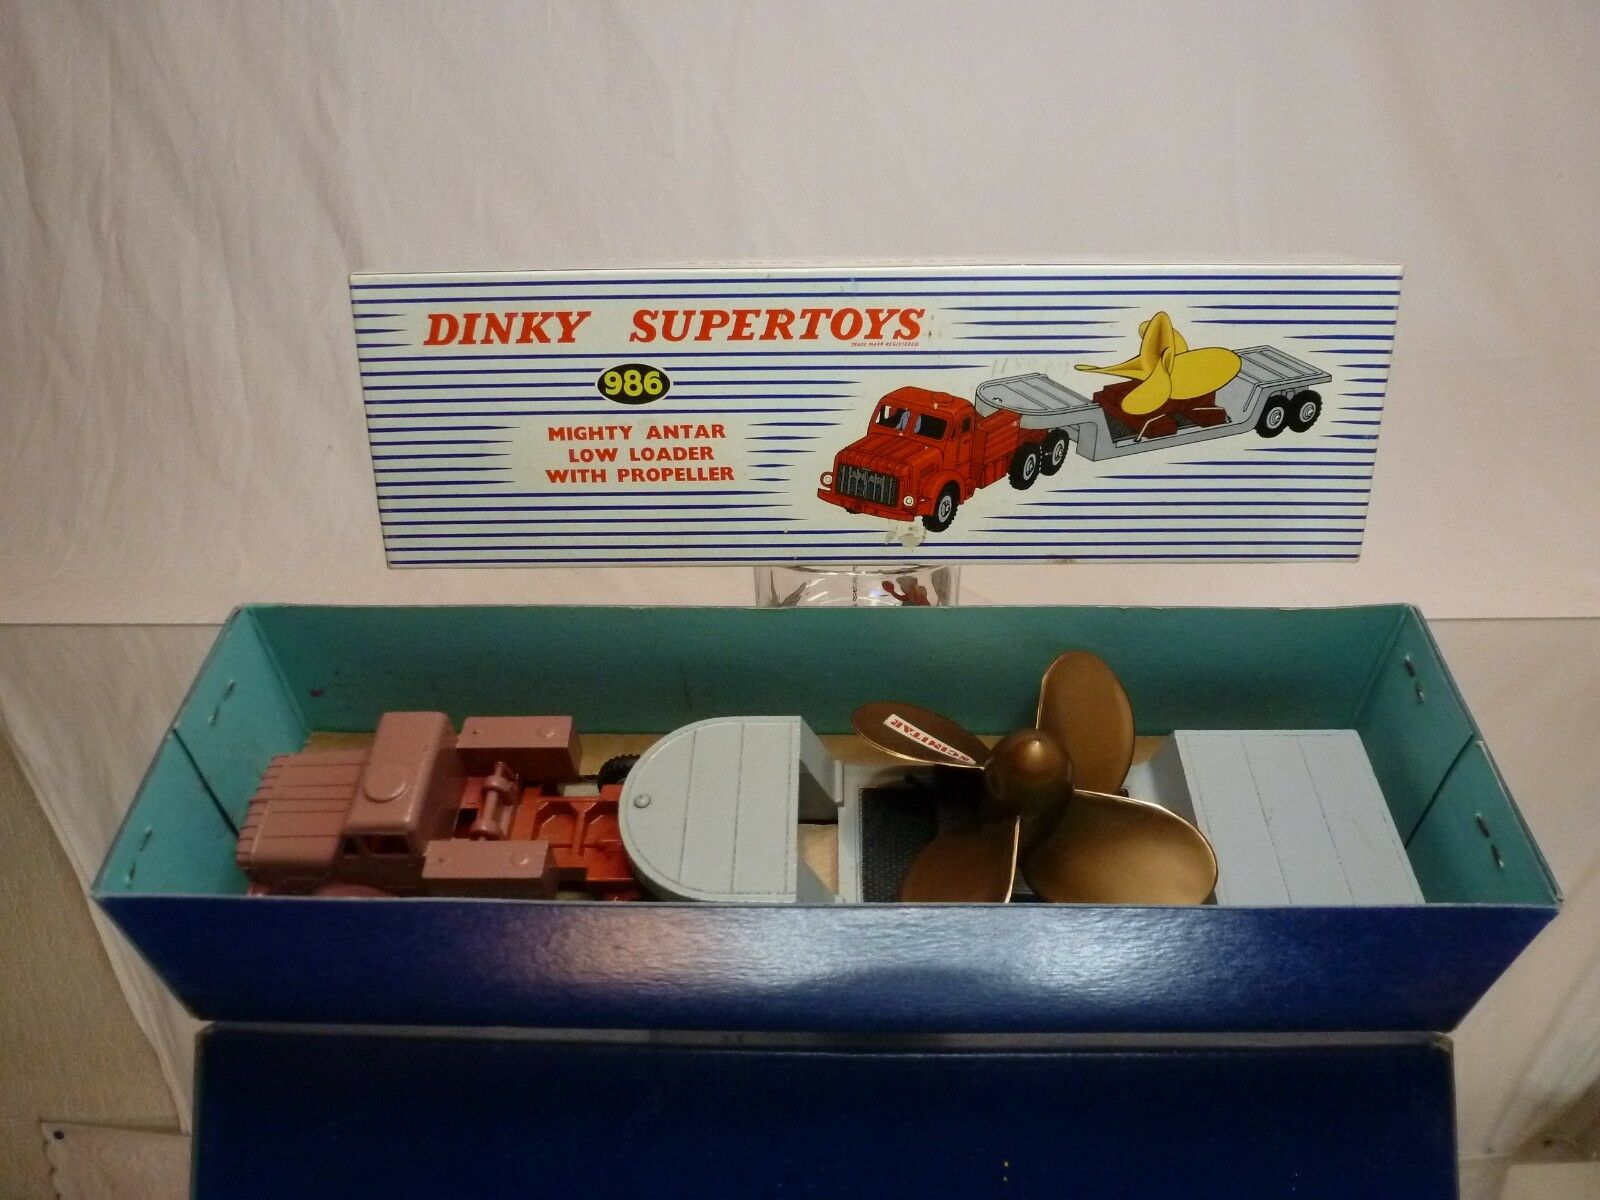 DINKY TOYS 986 MIGHTY ANTAR LOW LOADER + PROPELLER - RARE - VERY GOOD IN BOX